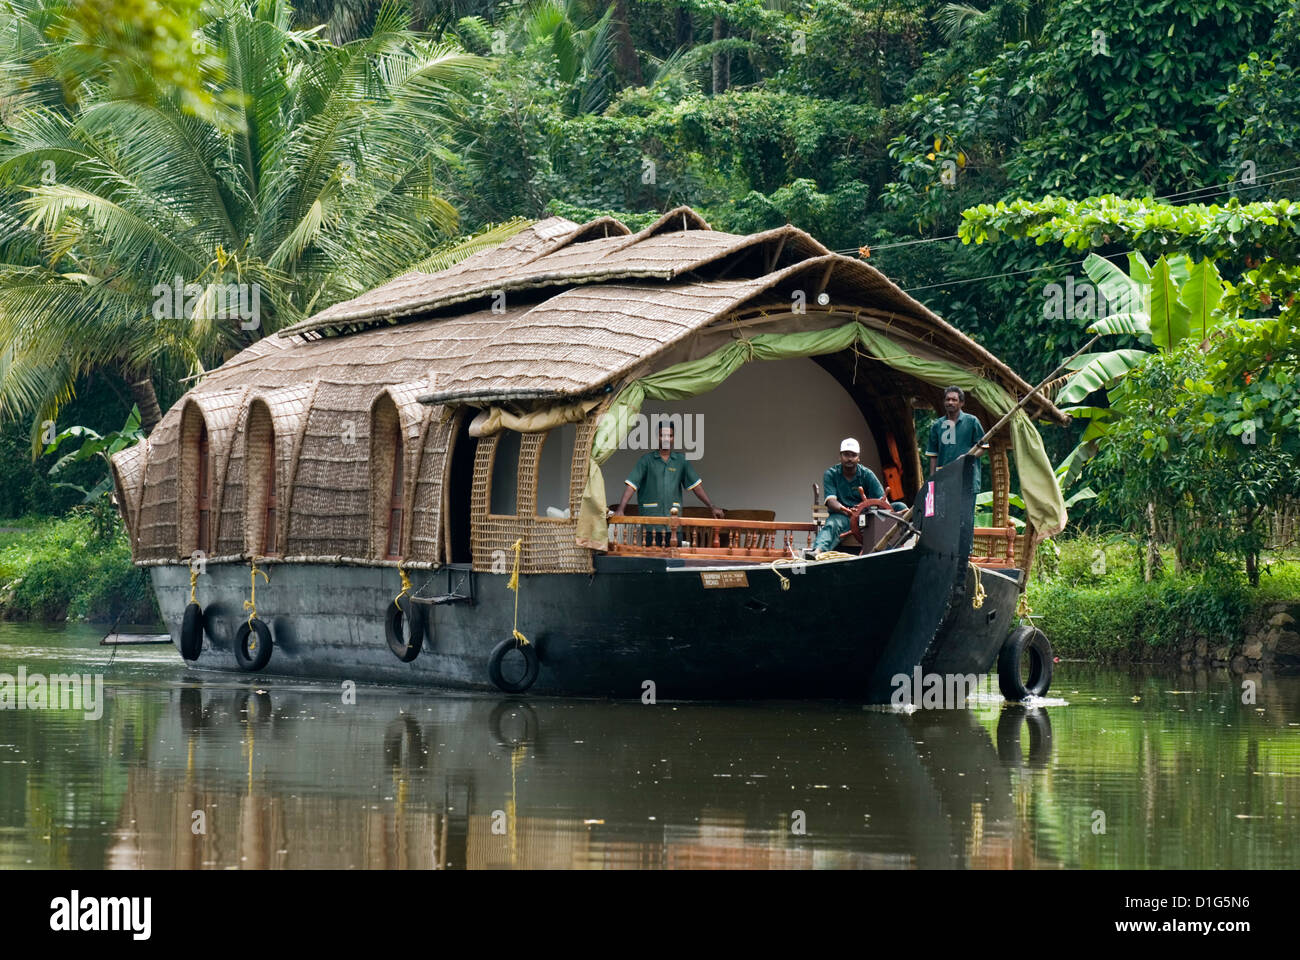 House boat on the Backwaters, near Alappuzha (Alleppey), Kerala, India, Asia - Stock Image